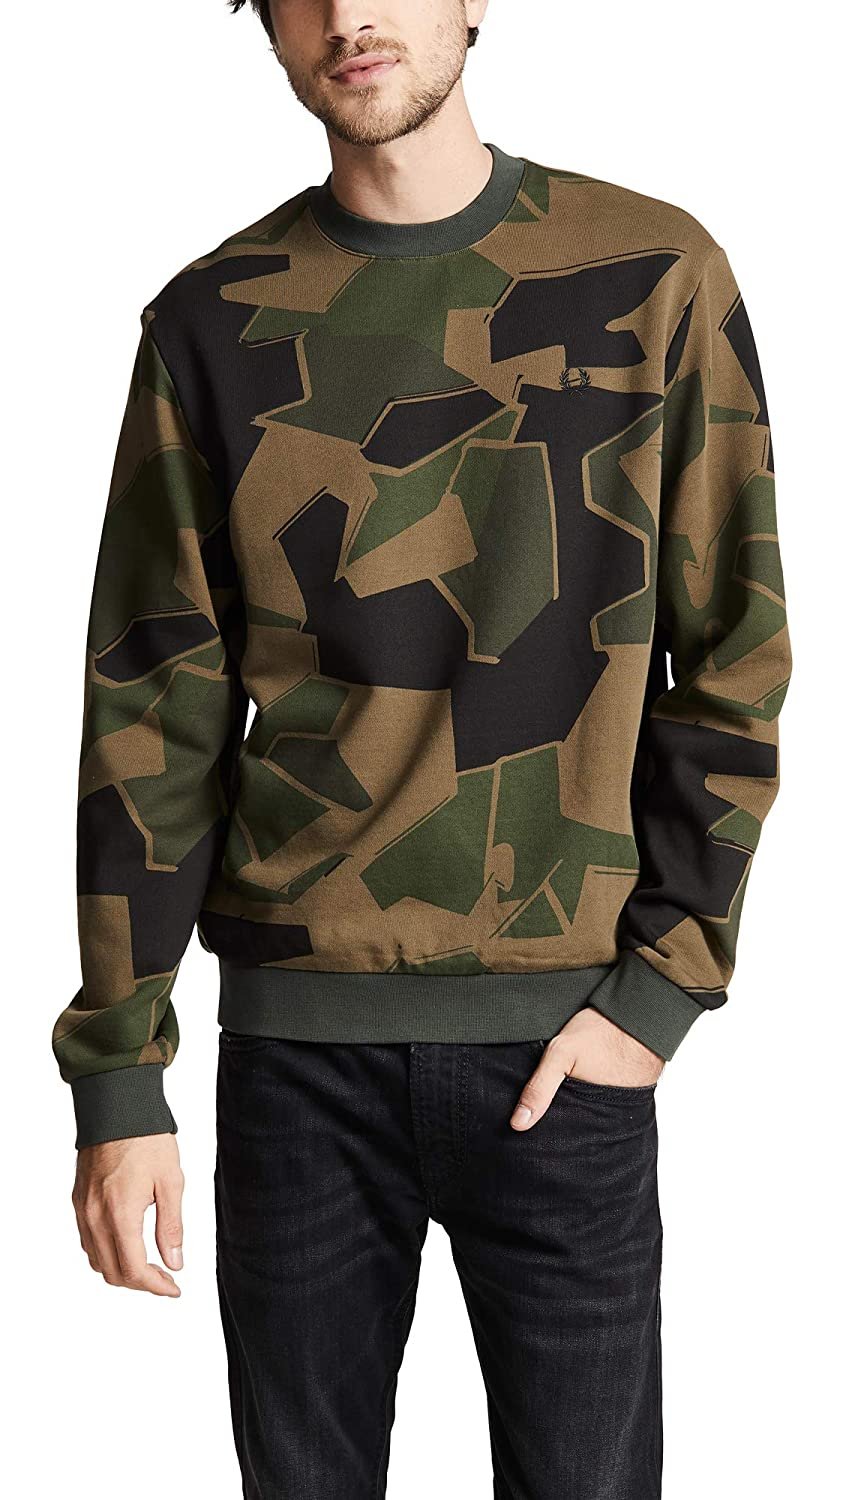 FROT Perry Men's Arktis Camo Sweatshirt